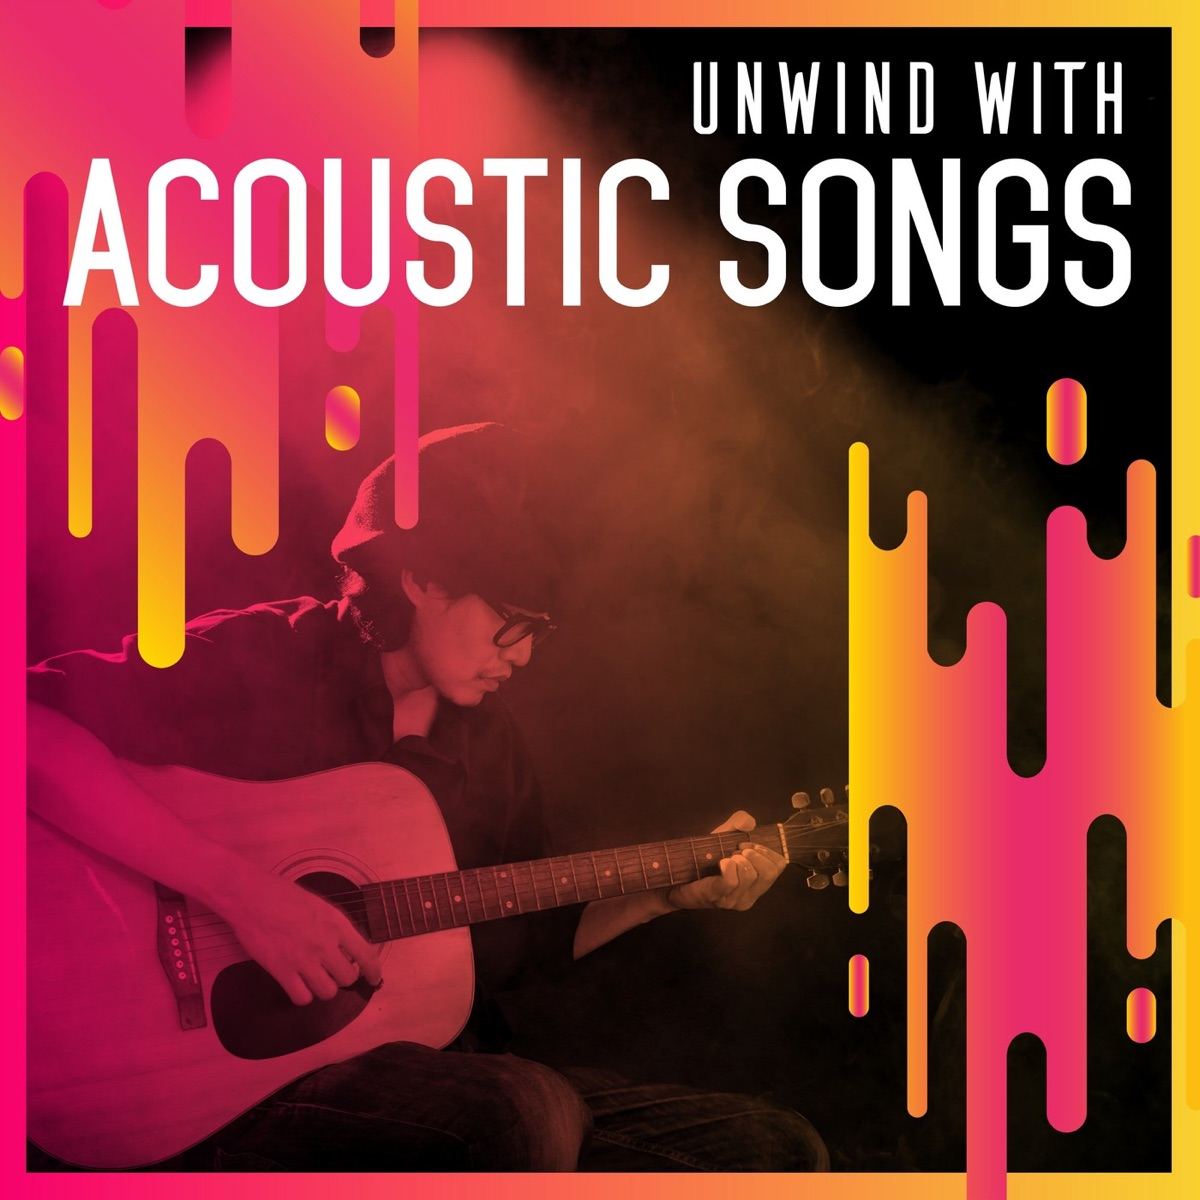 Unwind with Acoustic Songs Album Cover by Various Artists